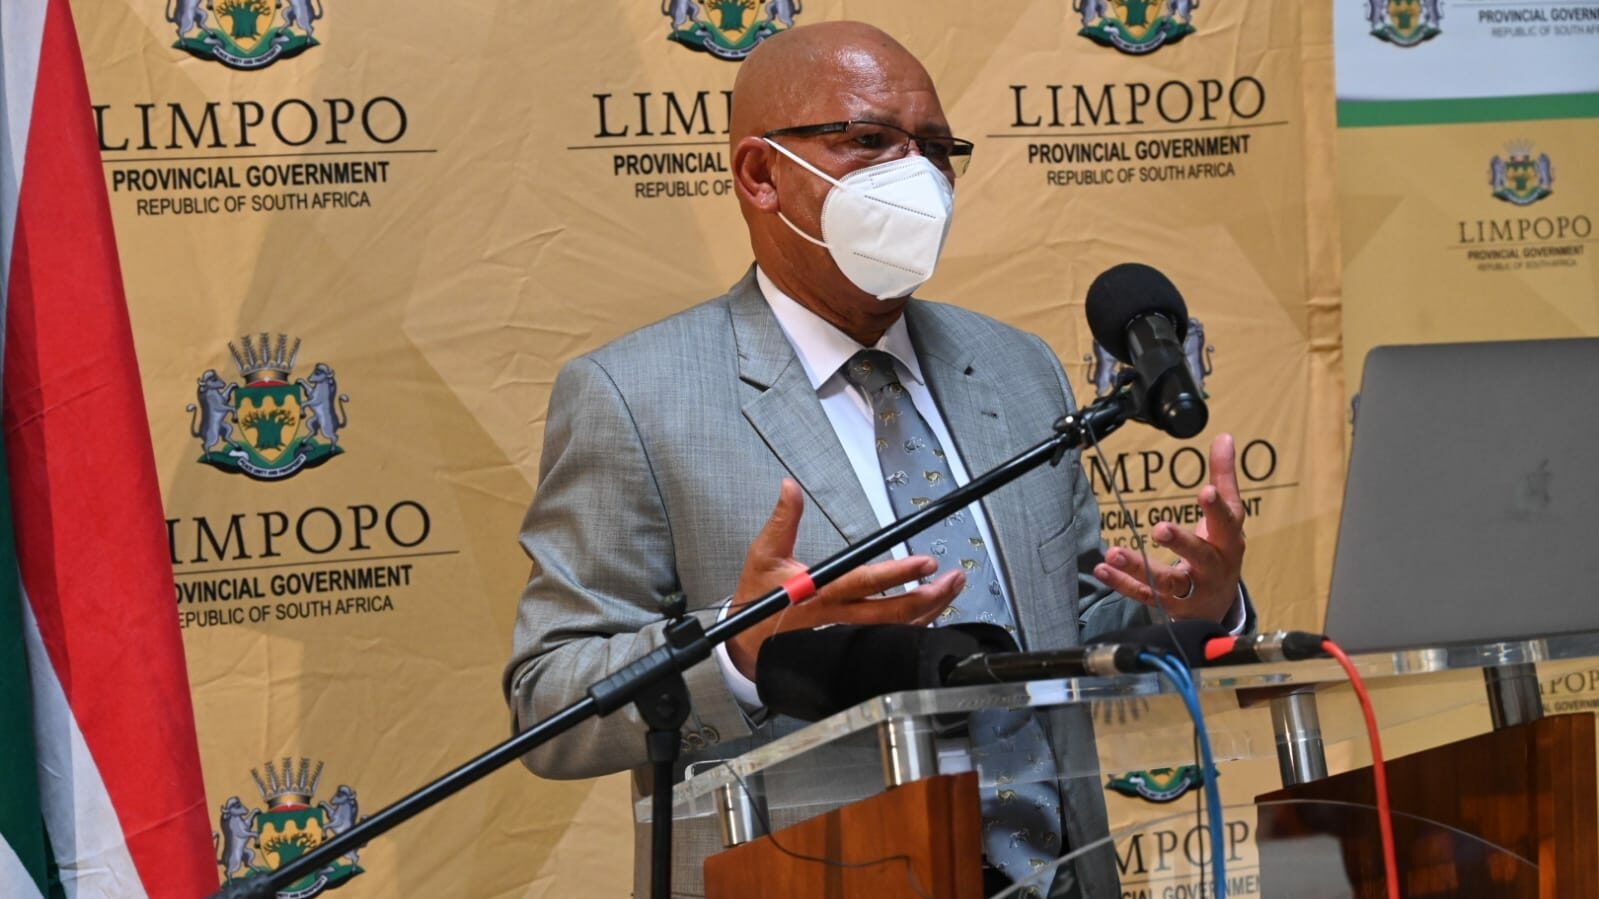 Premier Chupu Mathabatha Vaccine Roll-Out Strategy Media Briefing at Office of the Premier Atrium.